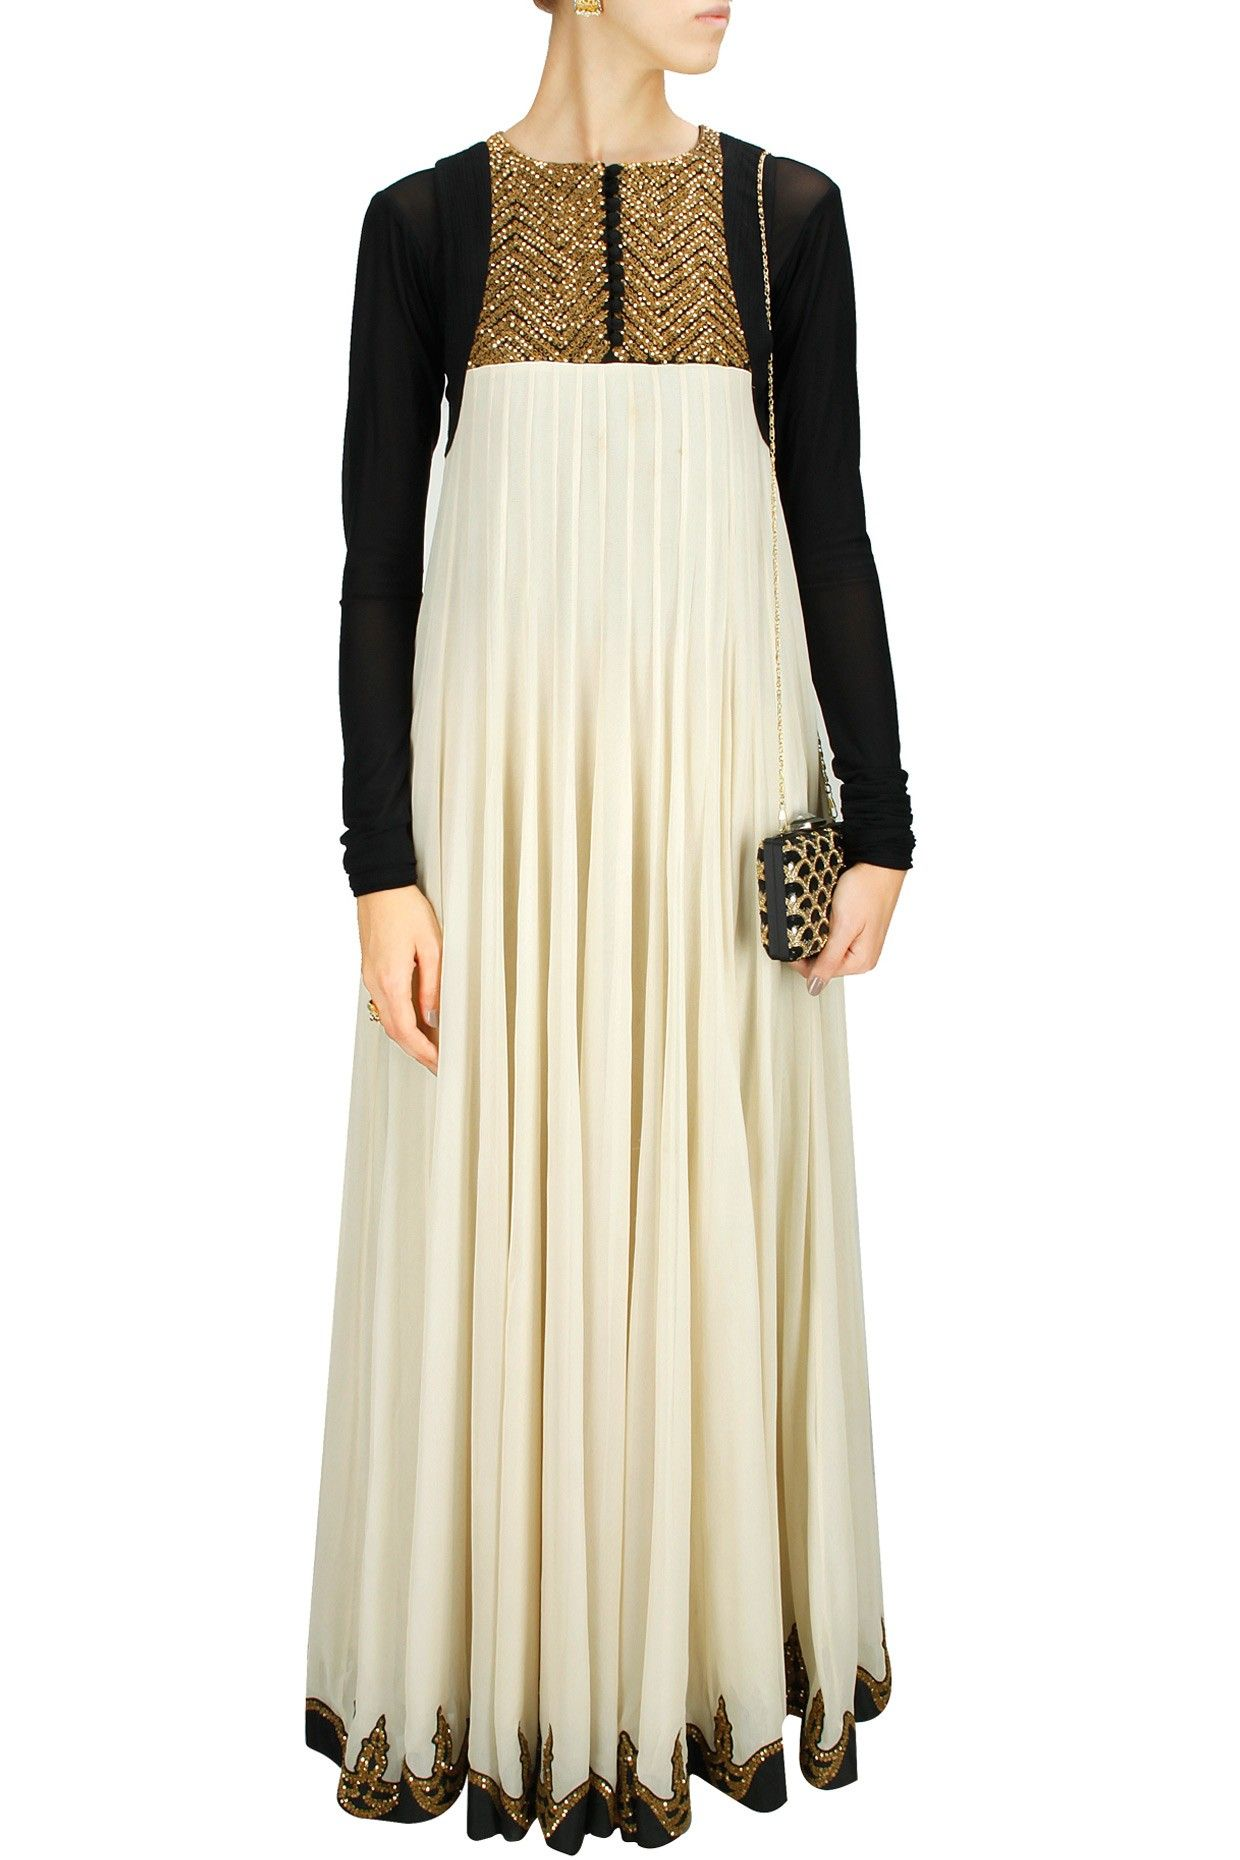 Ivory and black zardosi work long dress available only at perniaus